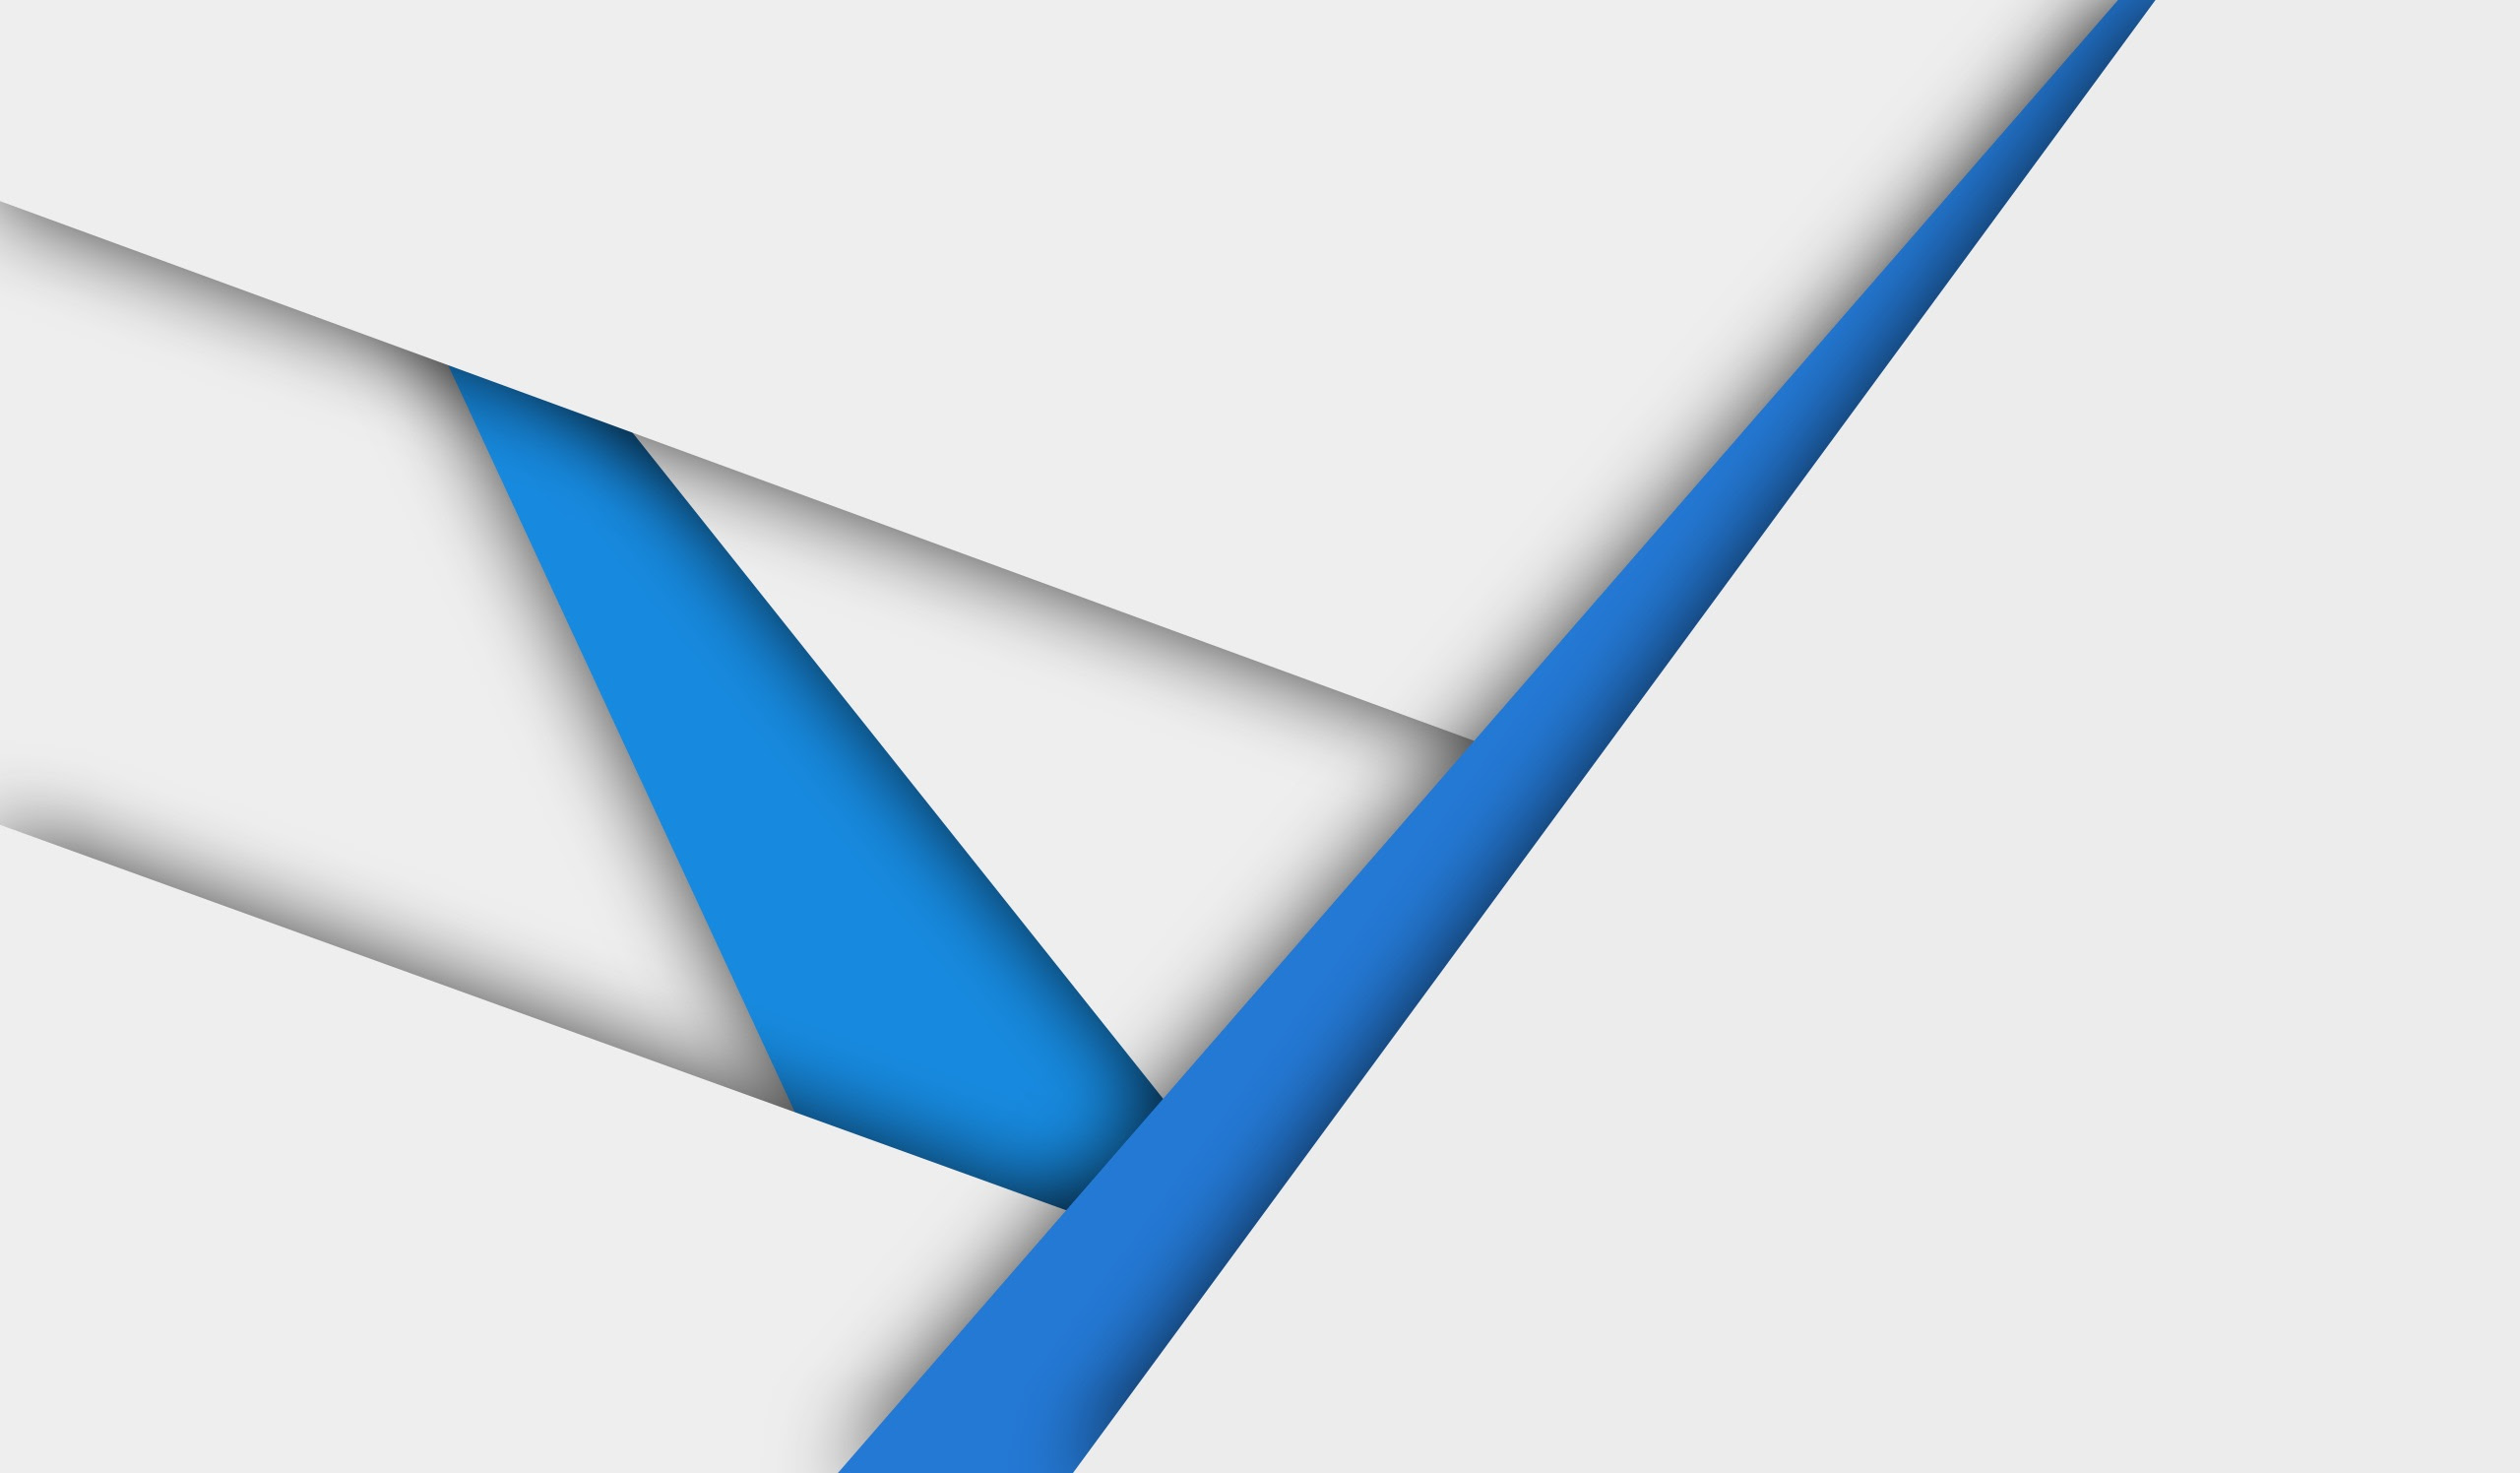 Material Design Blue And White Hd Artist 4k Wallpapers Images